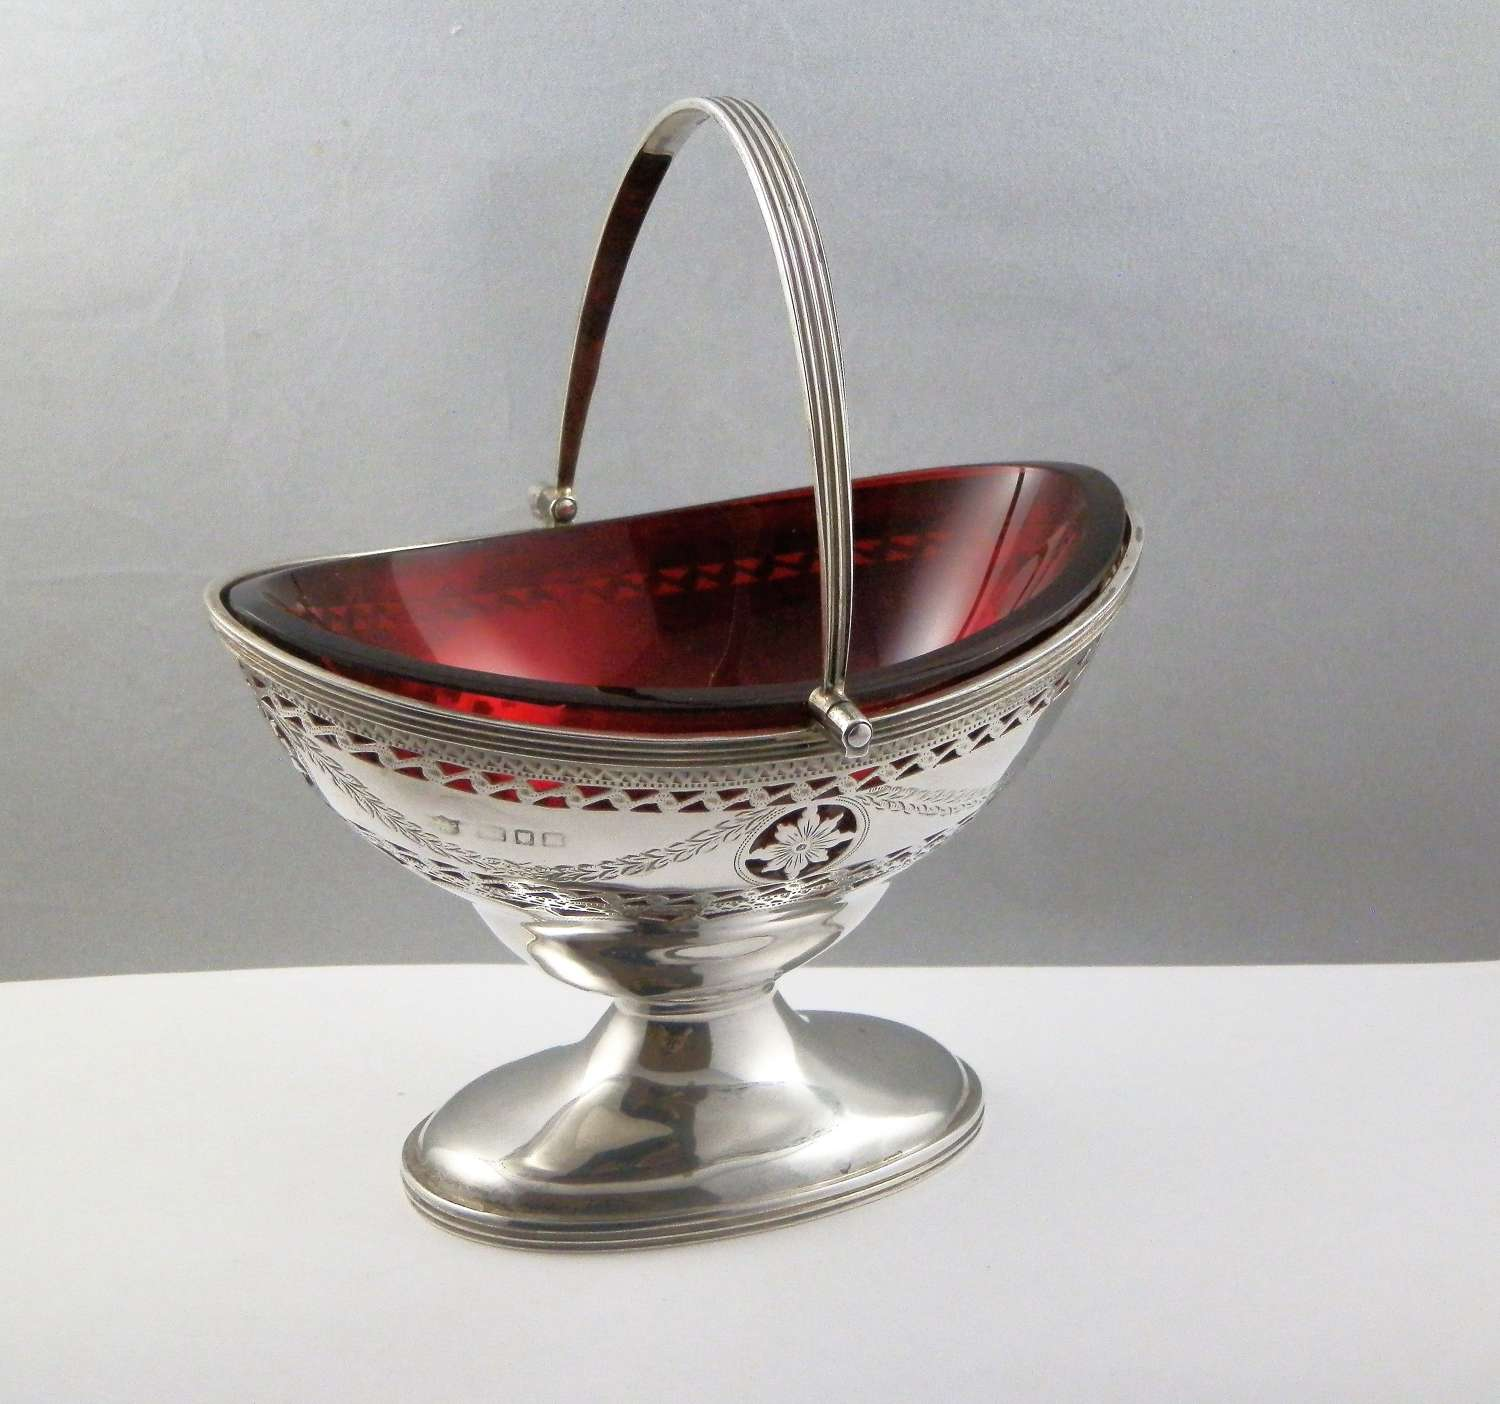 Victorian silver and cranberry glass bowl, London 1898